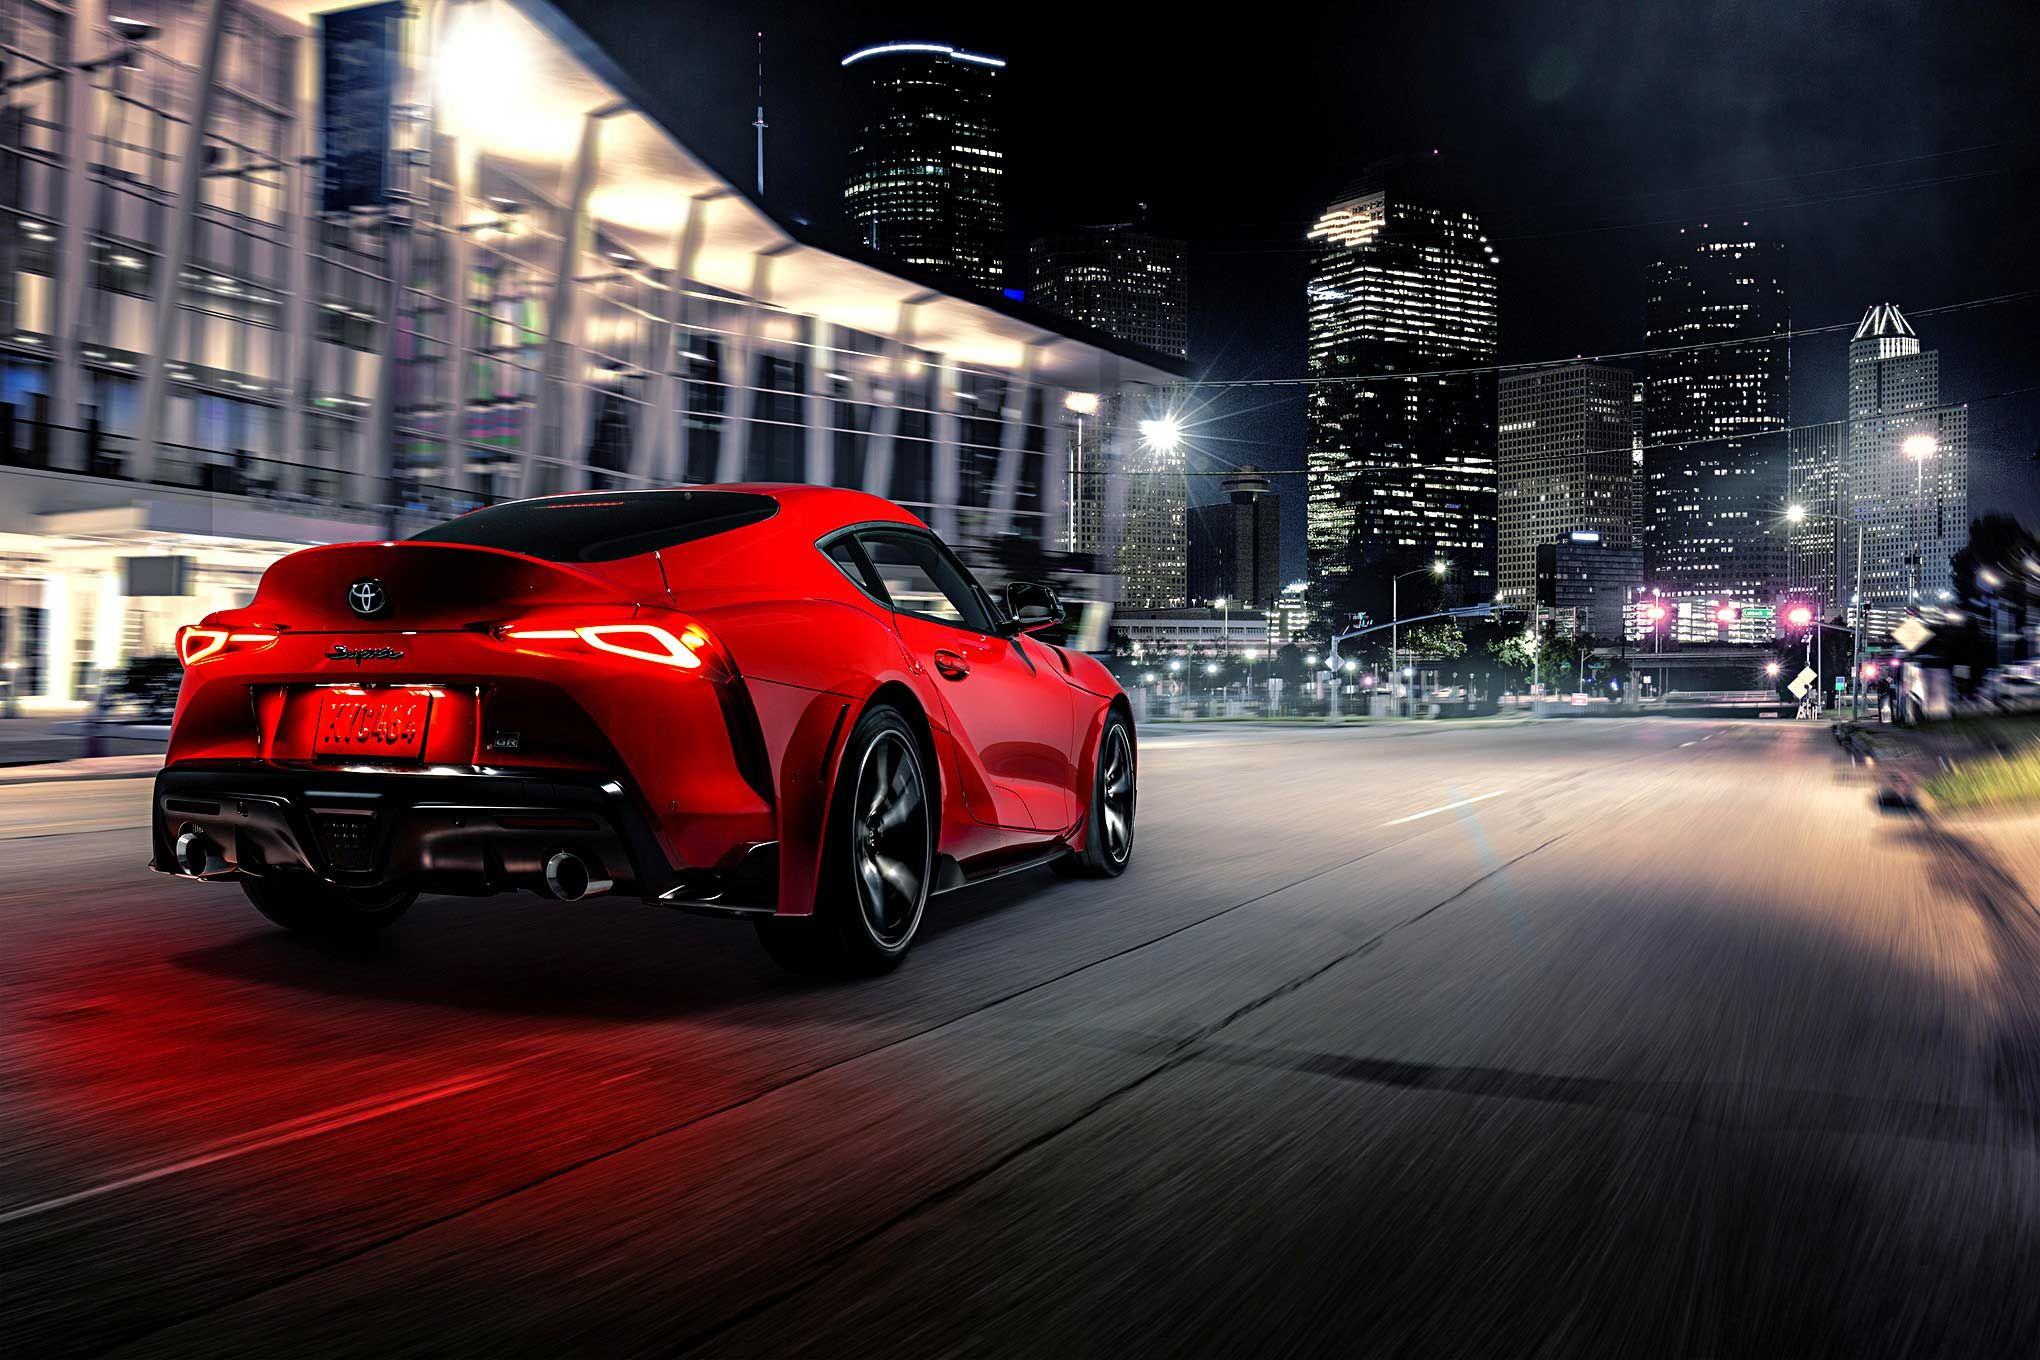 Image of the rear of a red 2020 Toyota Supra driving at night in the city.